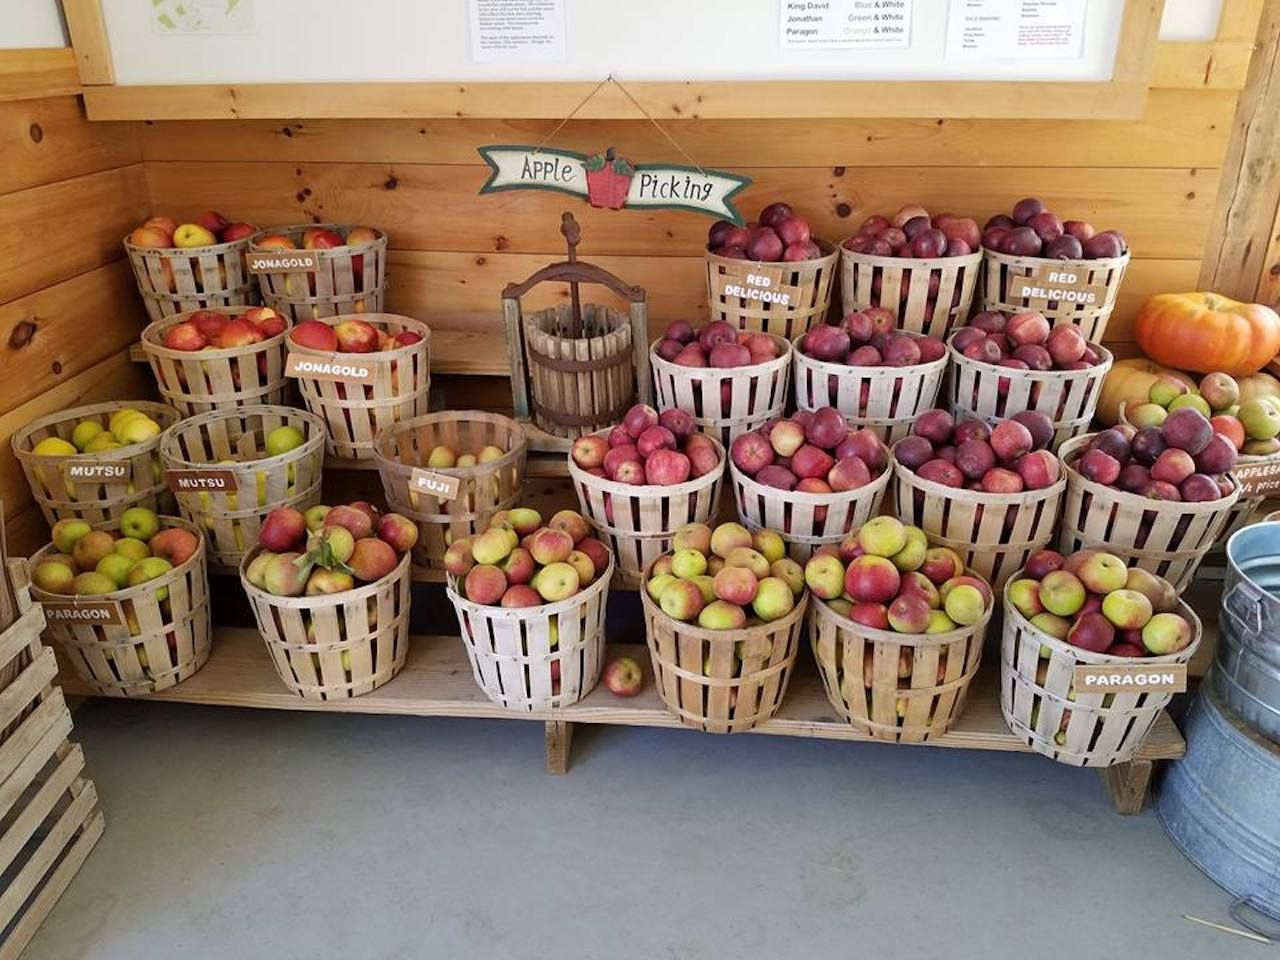 Apple picking at Riamede Orchard in Elmer, New Jersey